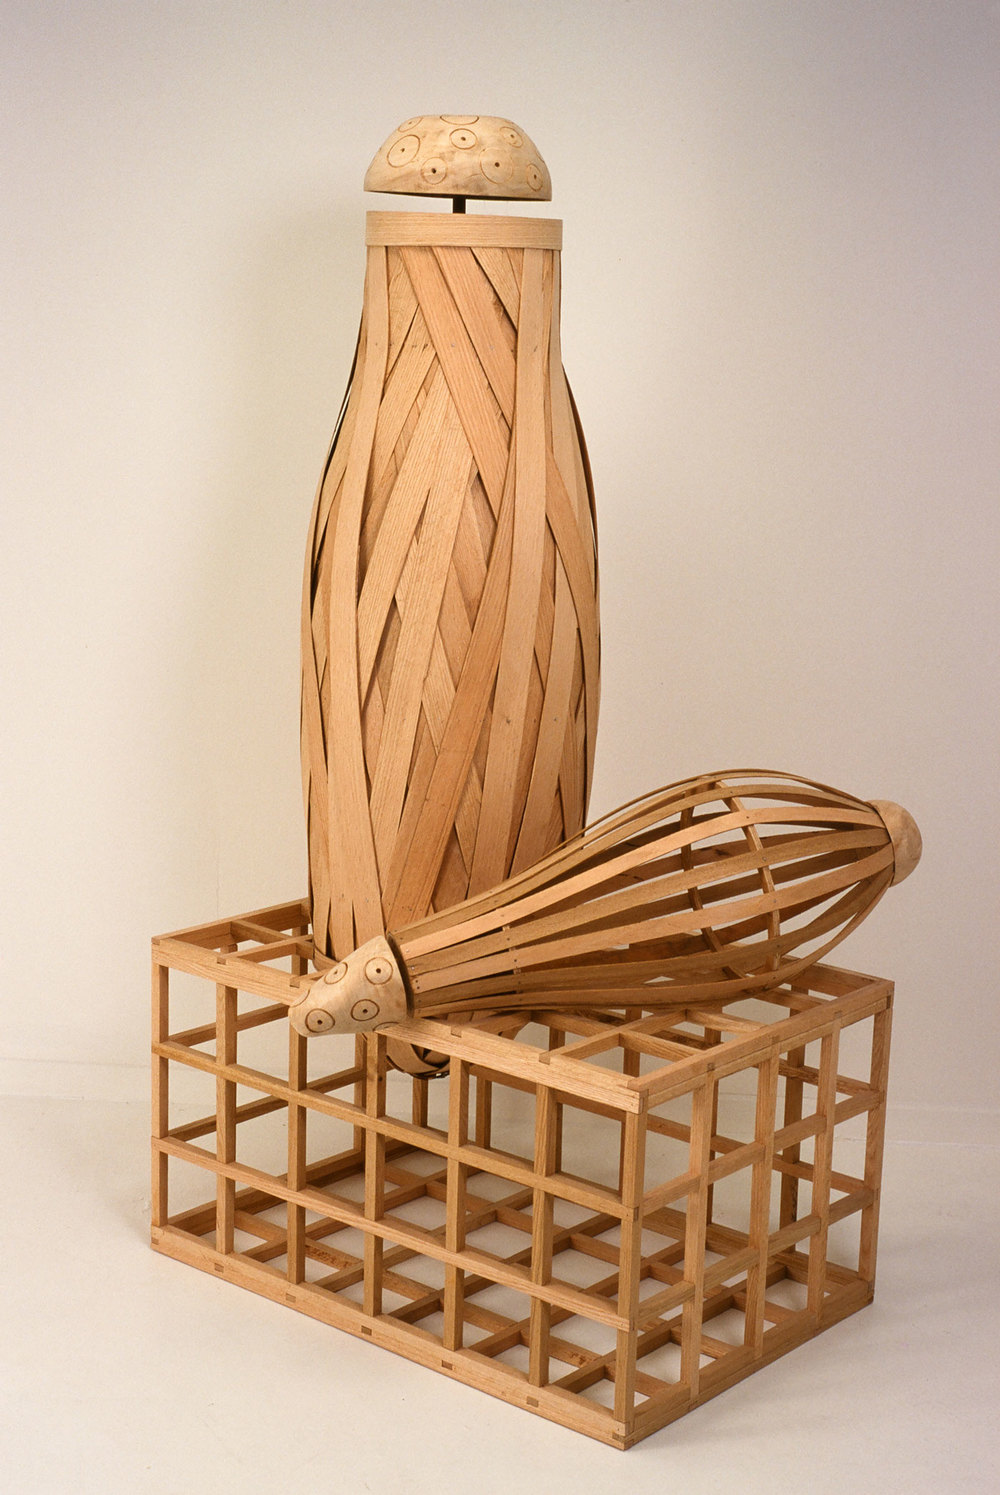 wood-sculpture-druva-artist-tom-gormally.jpg